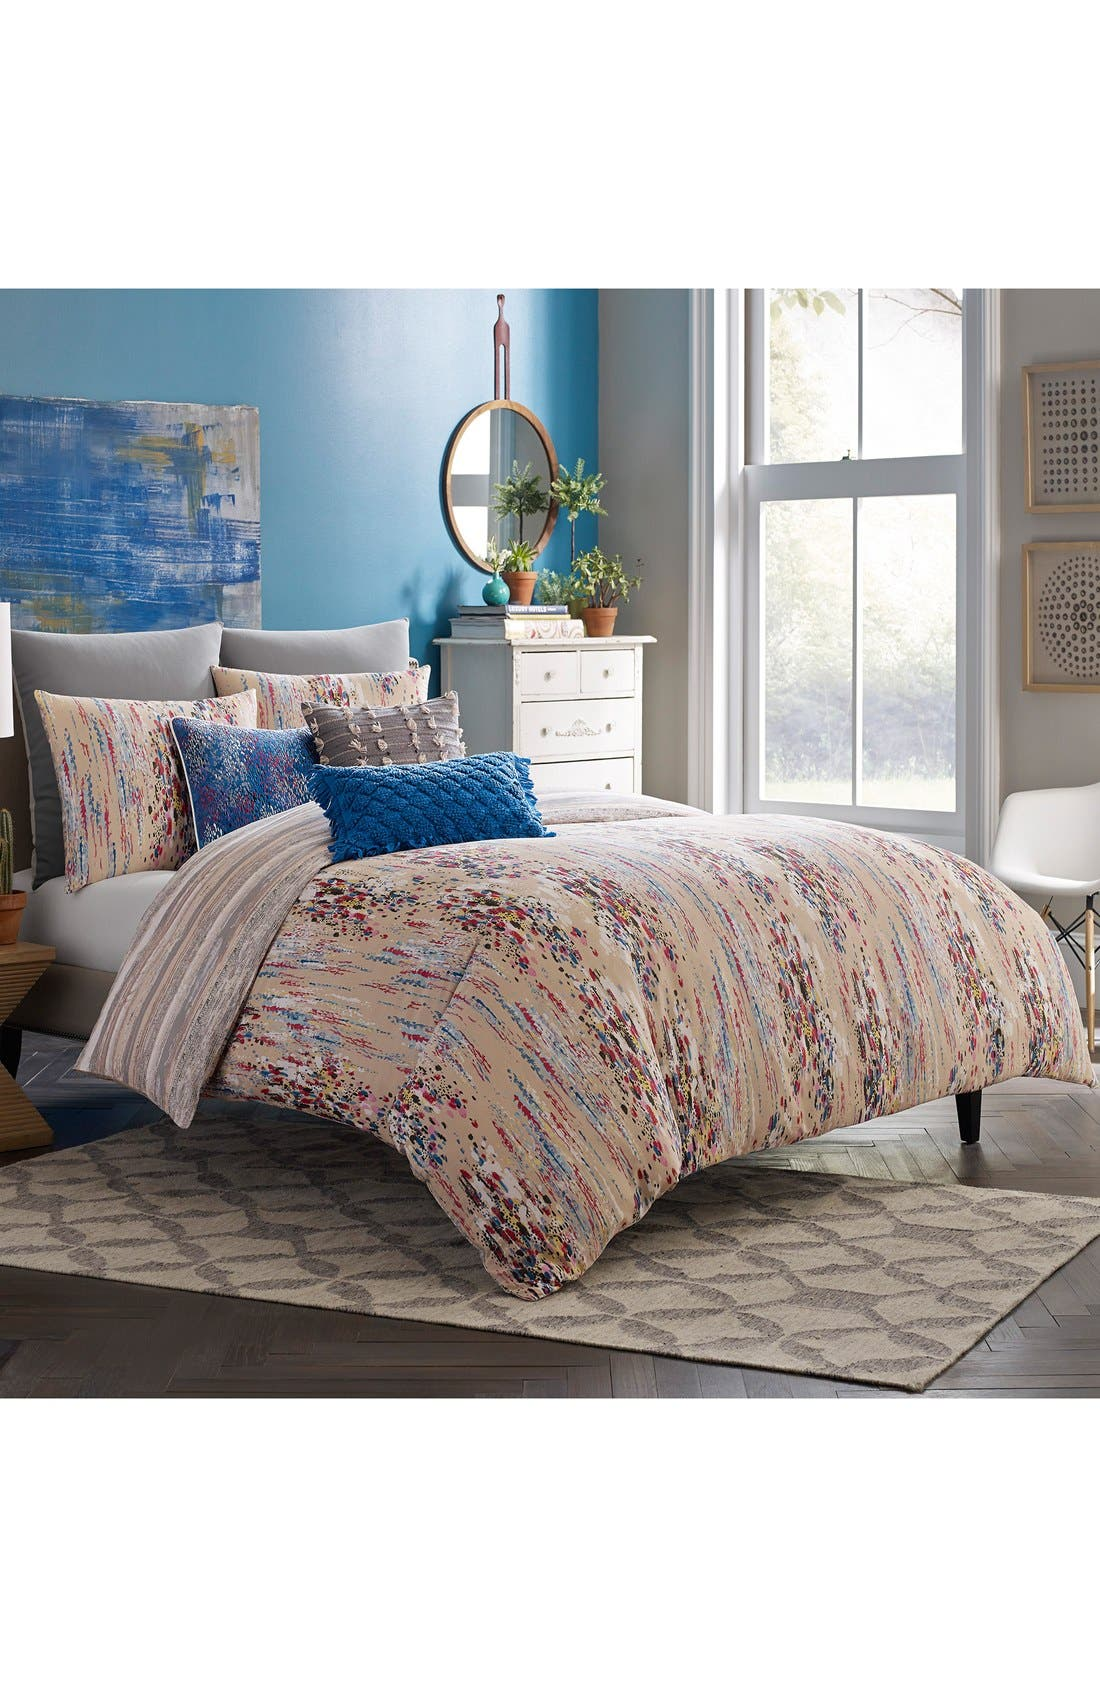 BLISSLIVING HOME Bellas Artes Duvet Cover & Sham